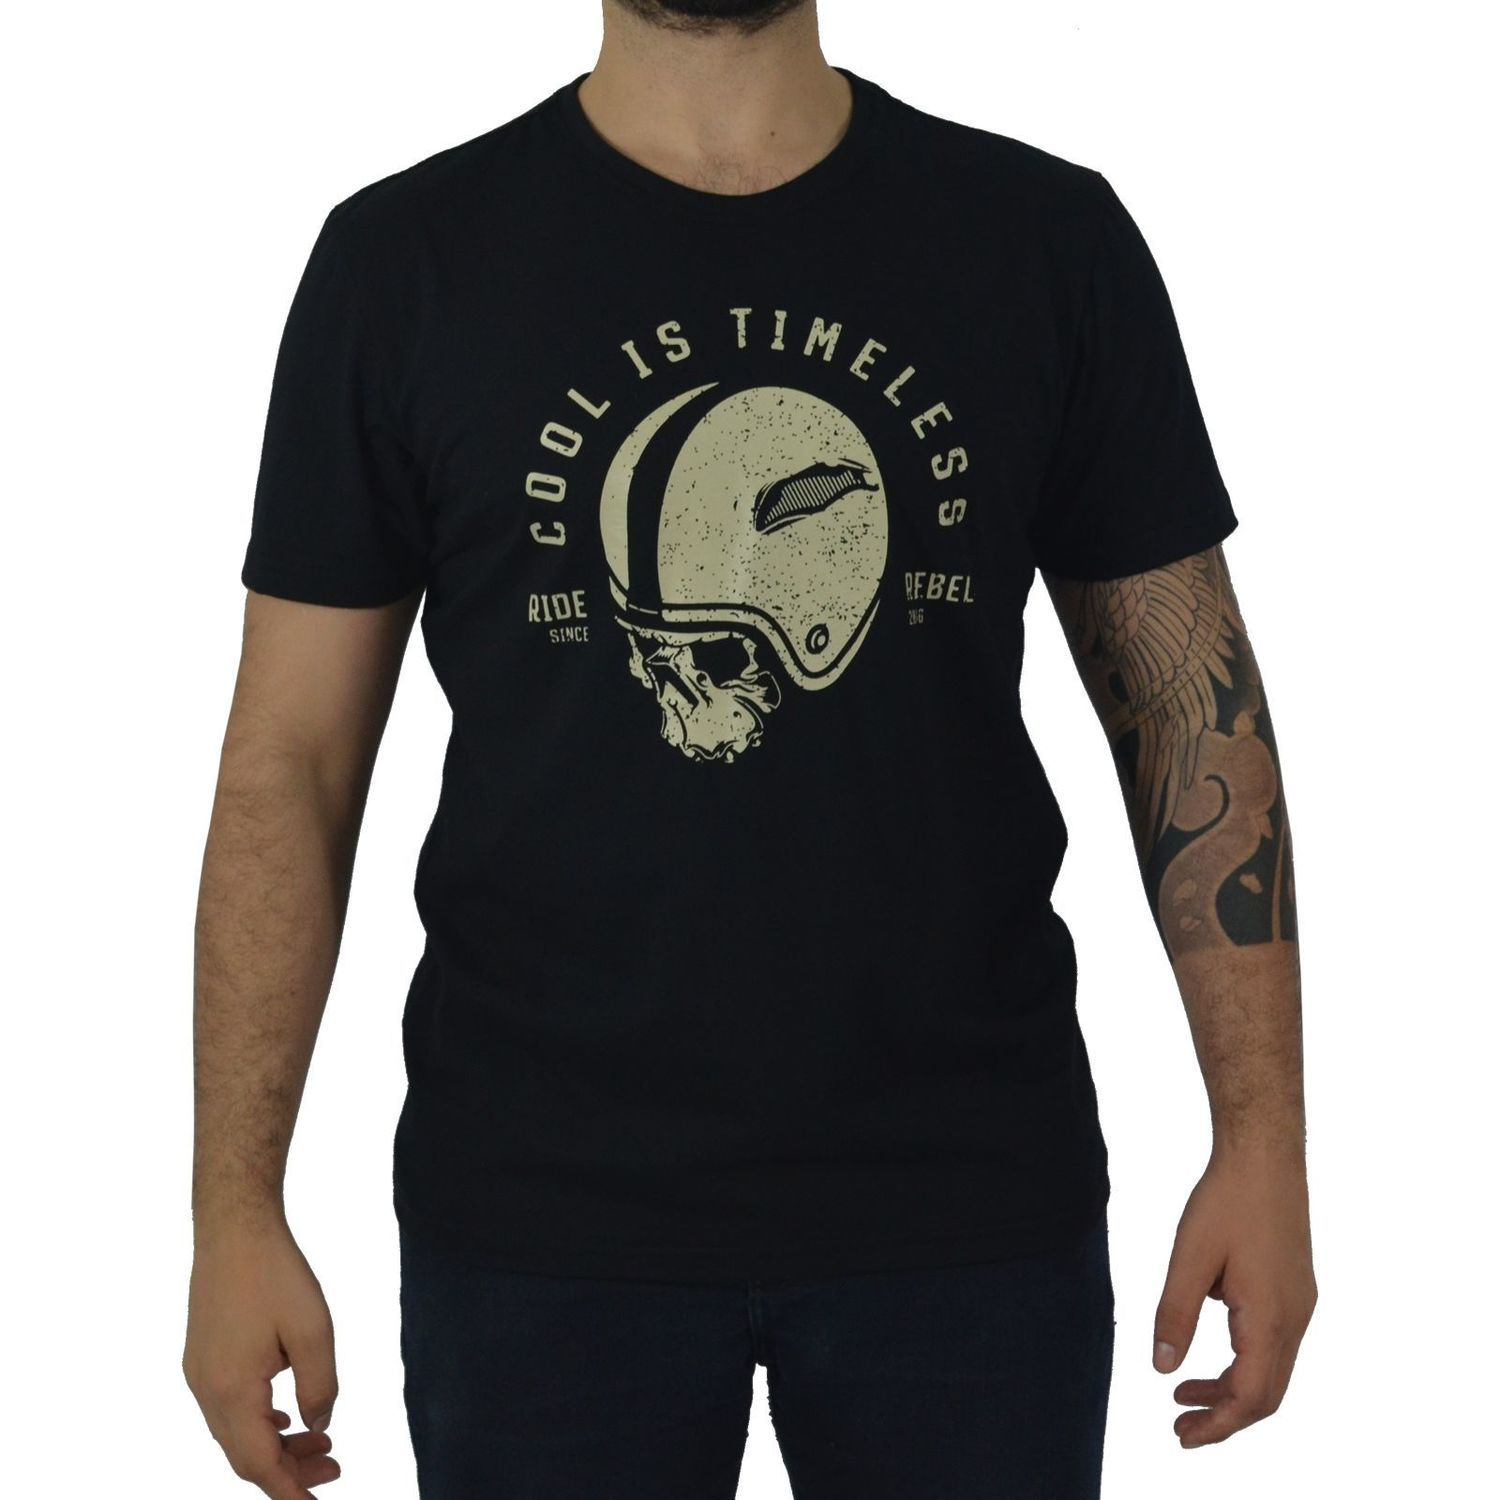 Camiseta Masculina Fallon & Co. Ride Rebel Preta